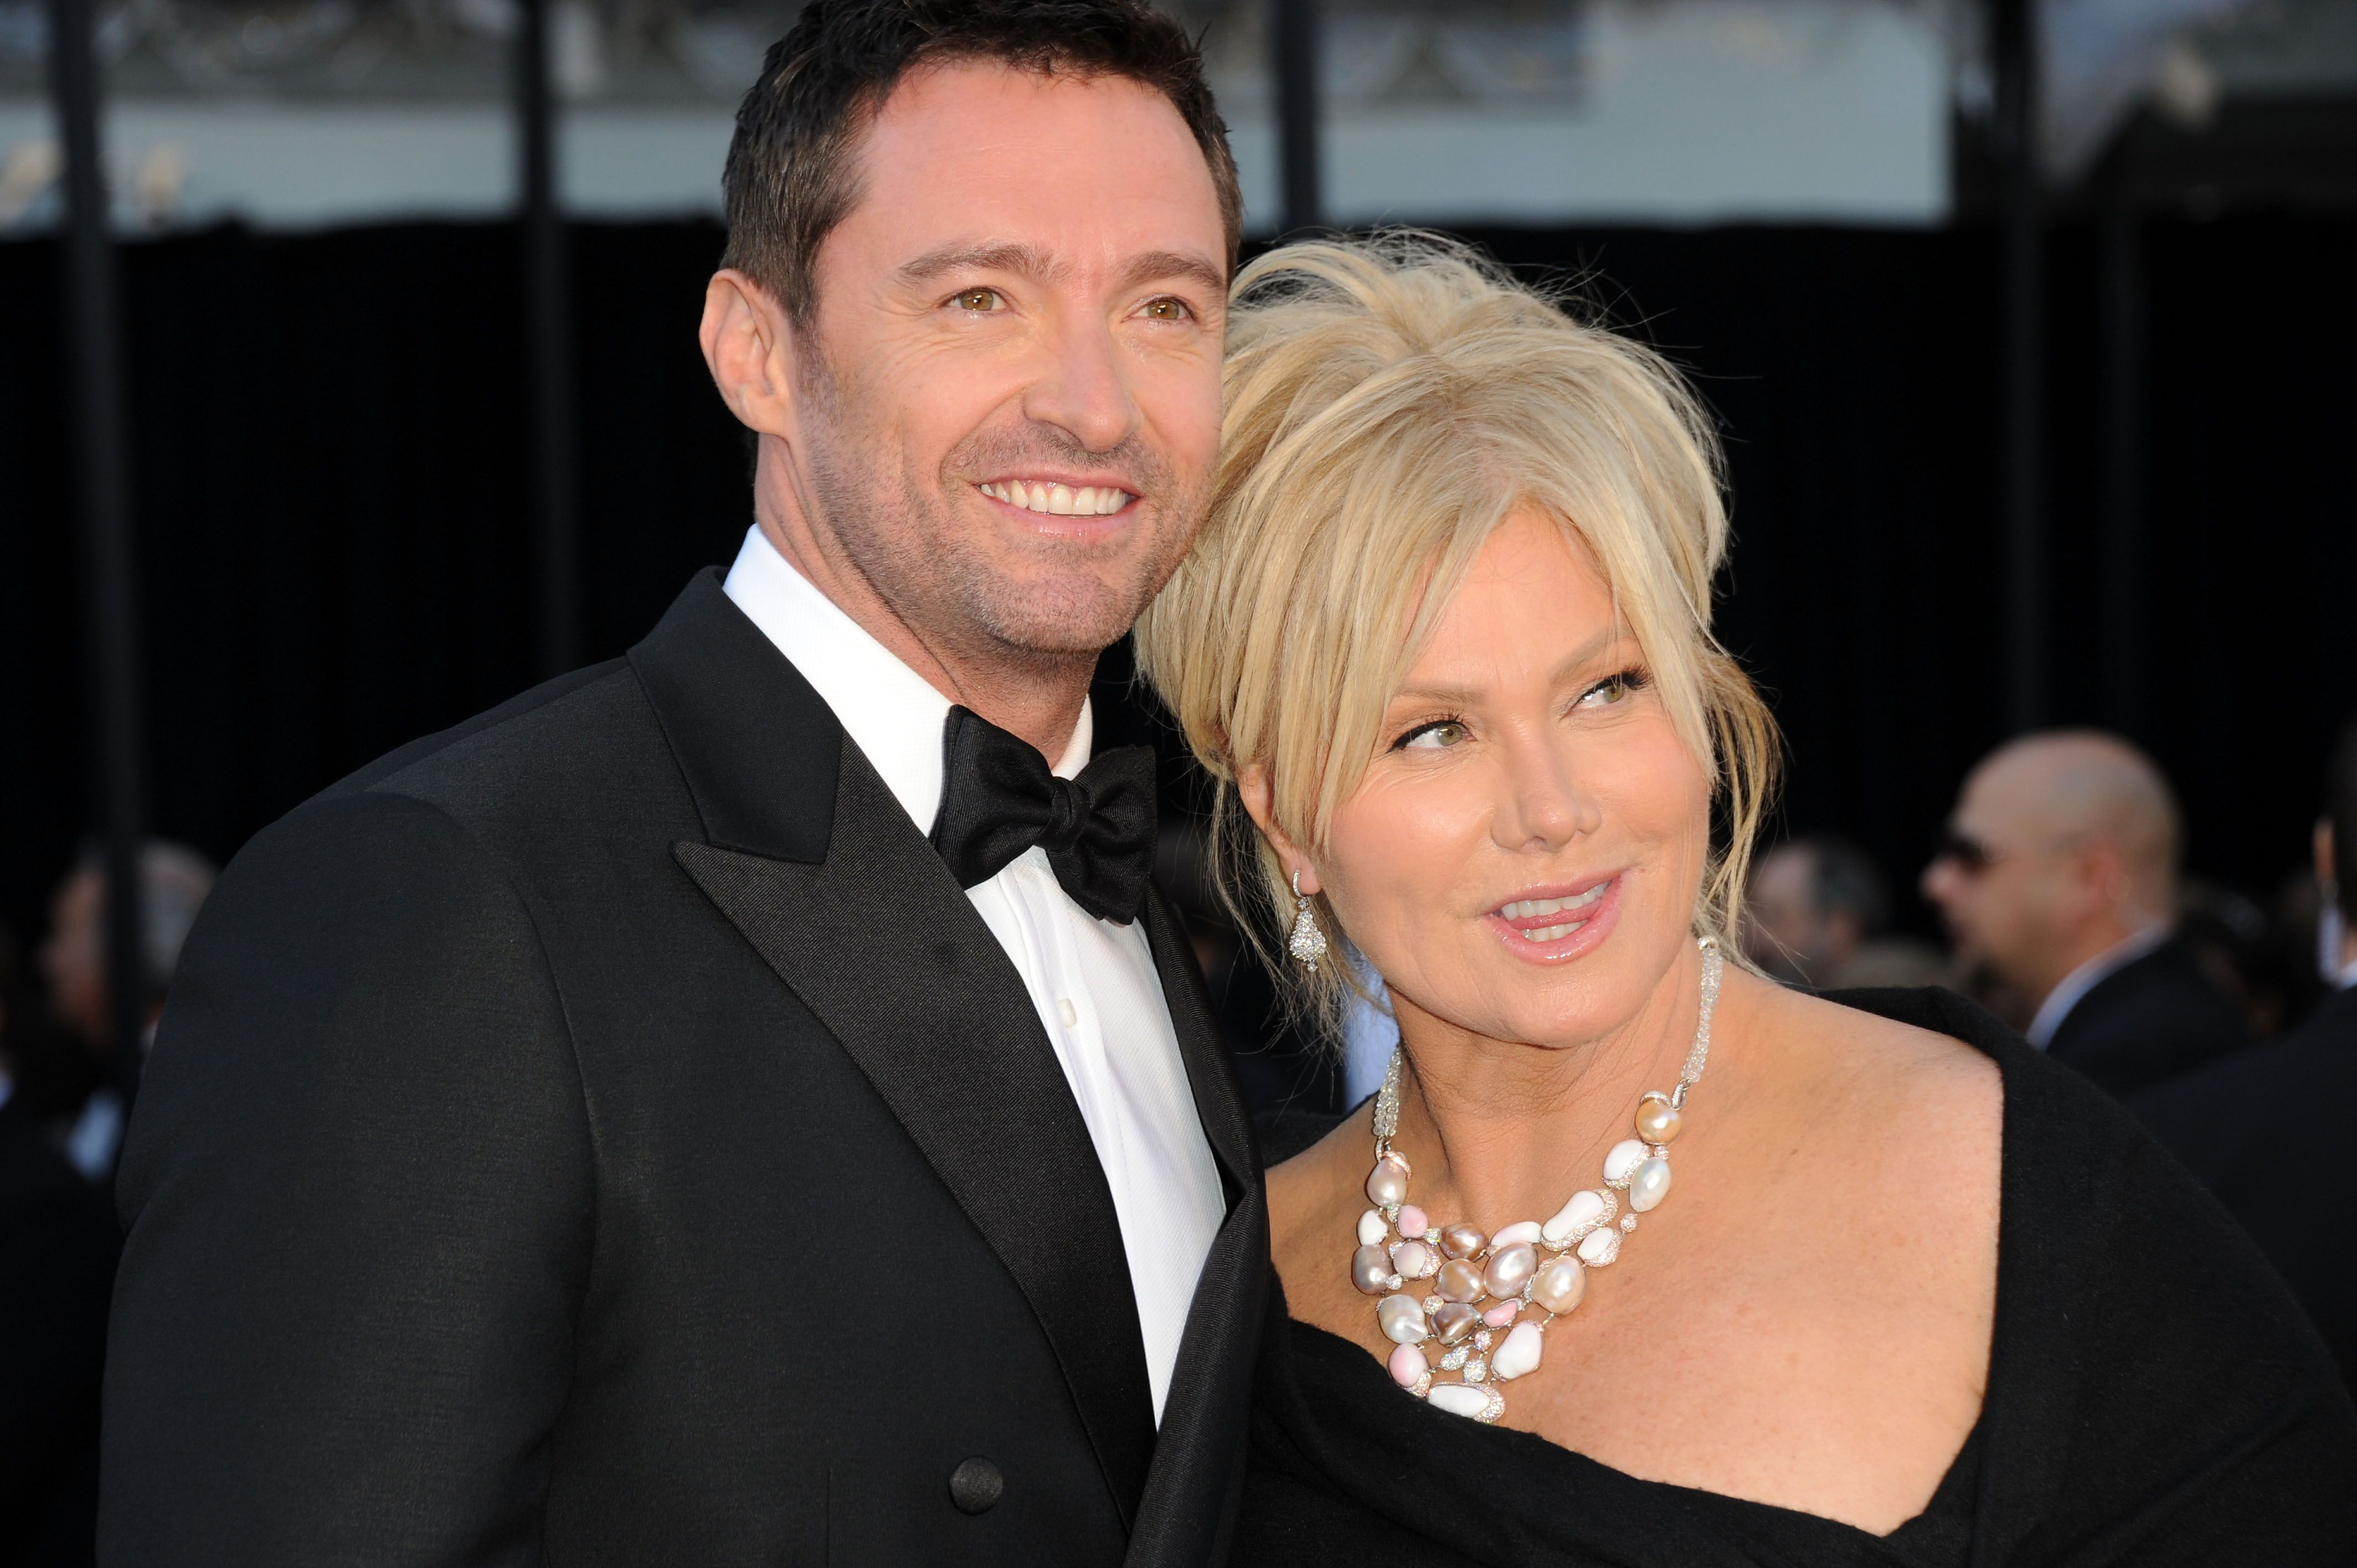 Hugh Jackman and wife Deborra-Lee Furnes arrive at the 83rd Annual Academy Awards held at the Kodak Theatre. | Source: Getty Images